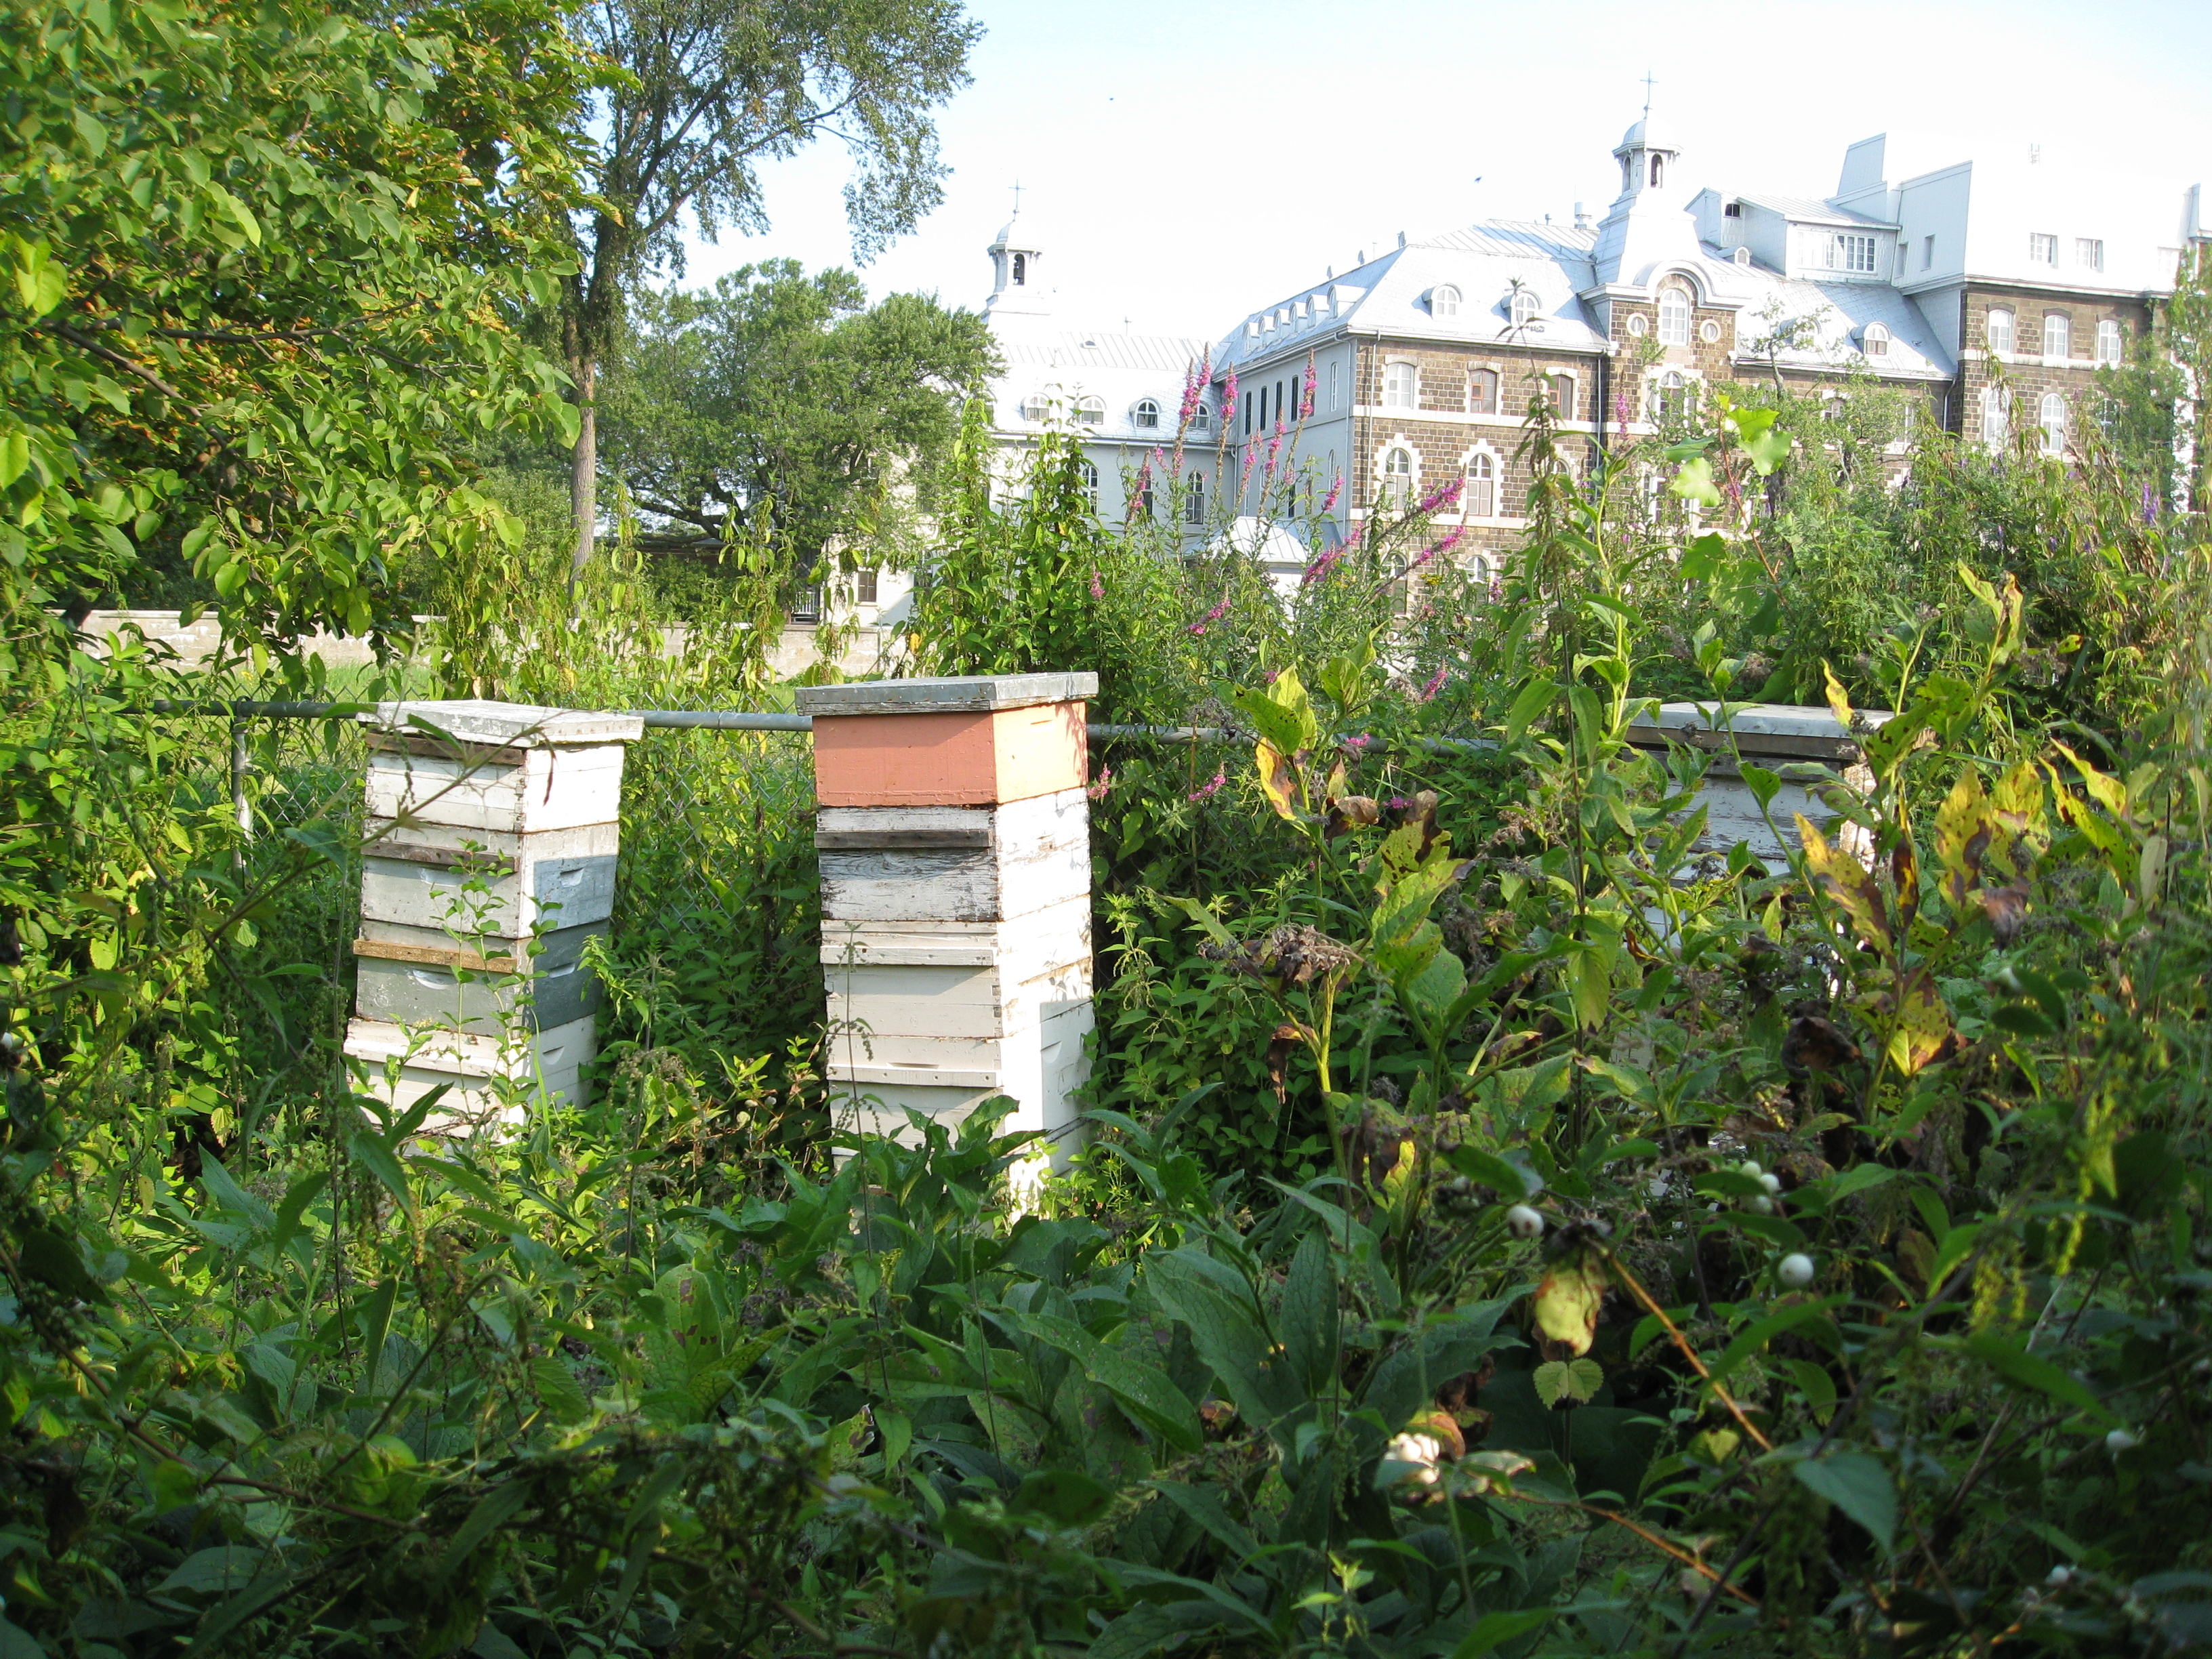 3 hives help pollinate the garden